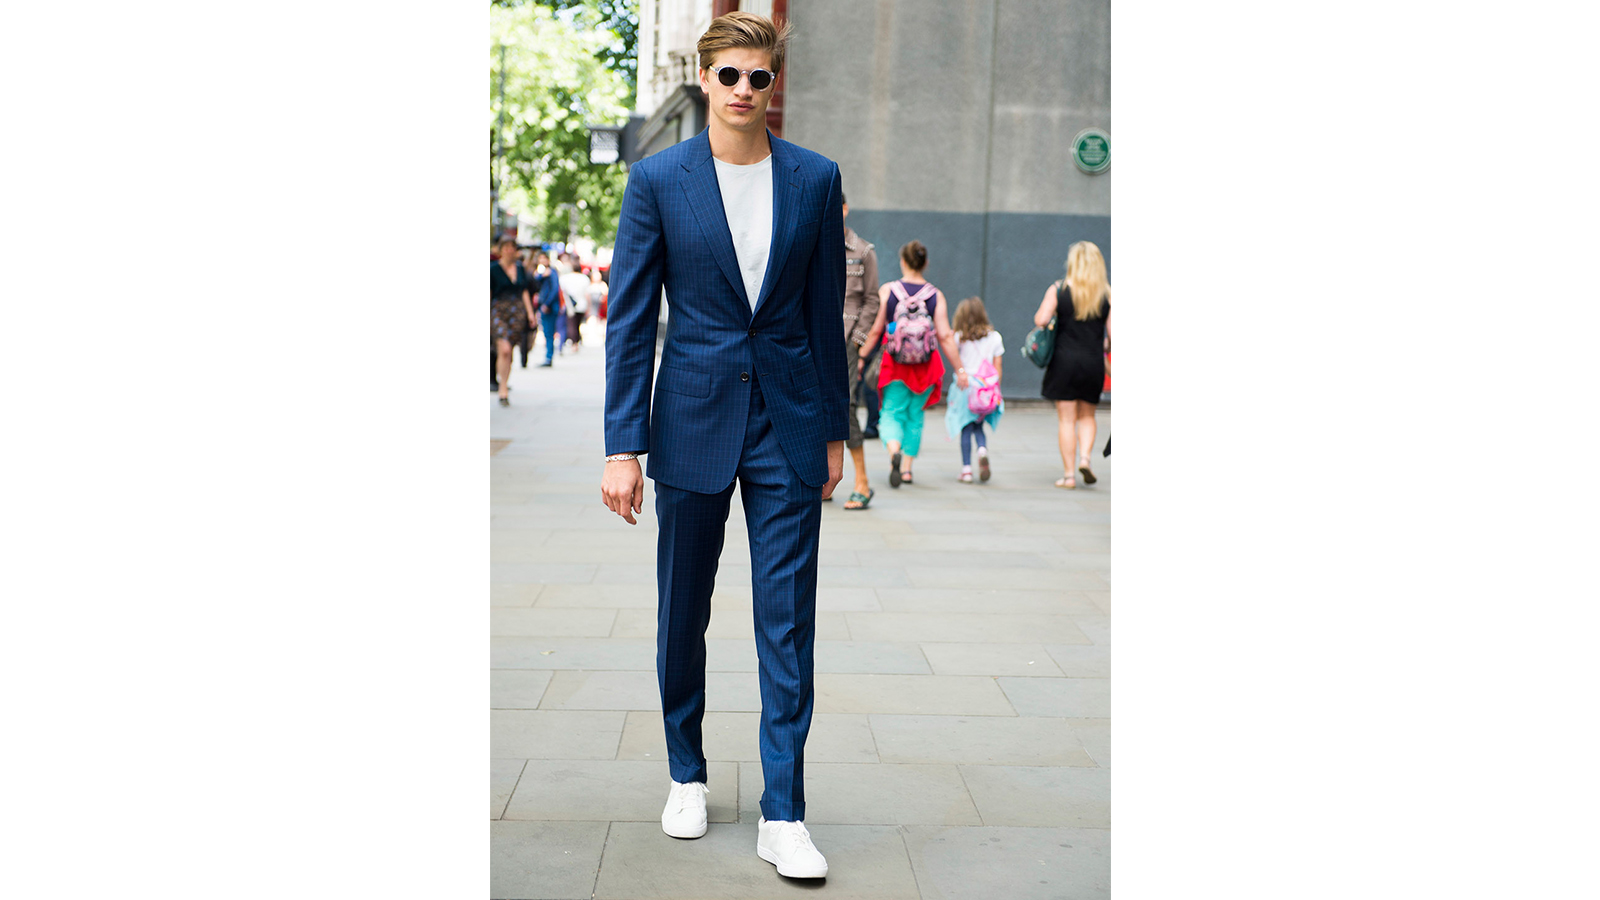 7 style tips for tall men - don't be afraid to visit a tailor